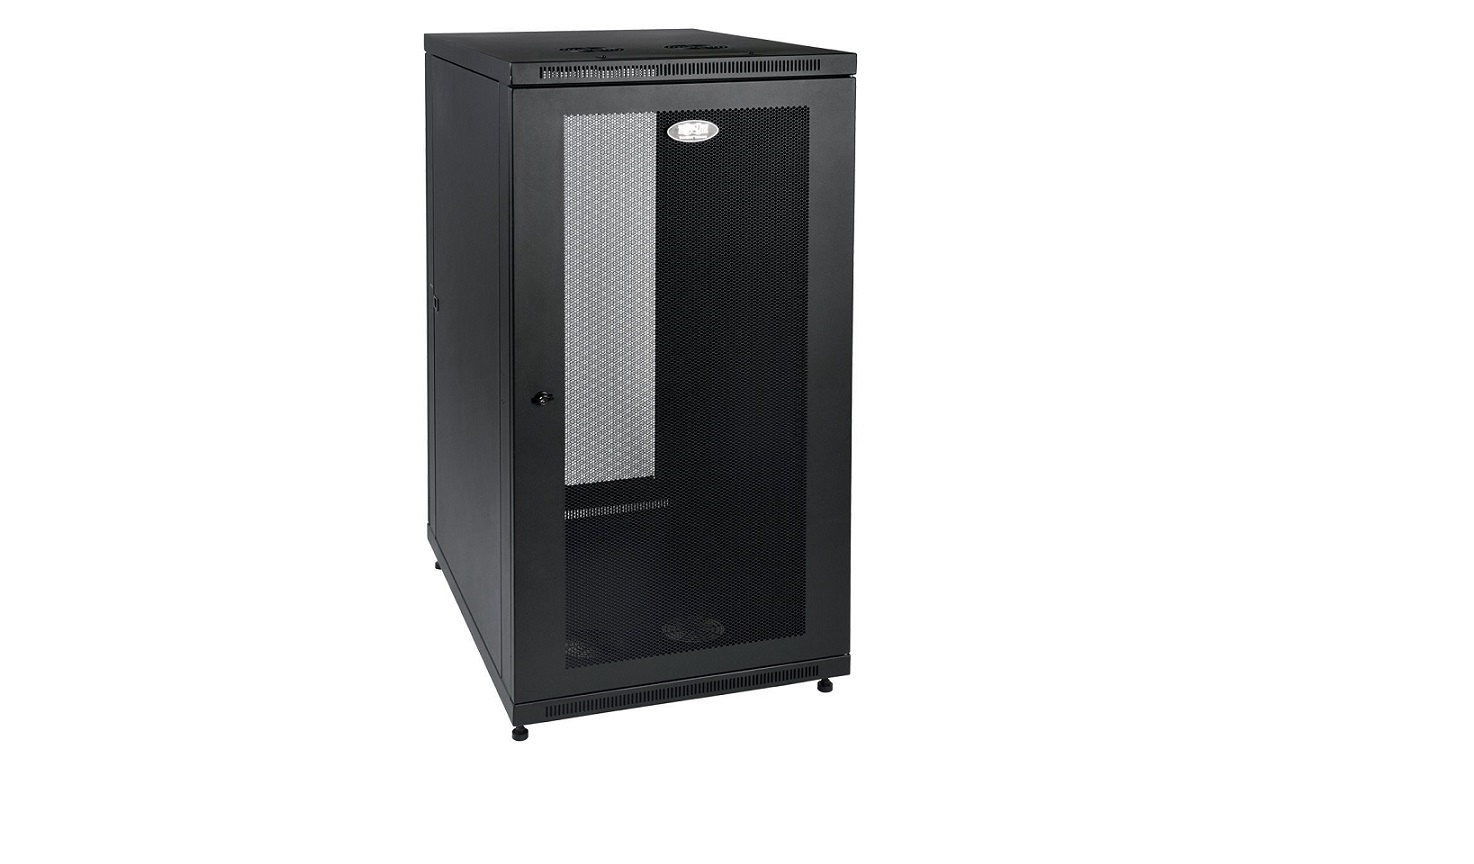 Tripp Lite 24U SmartRack Premium Enclosure (Includes Doors and Side Panels) SR24UB